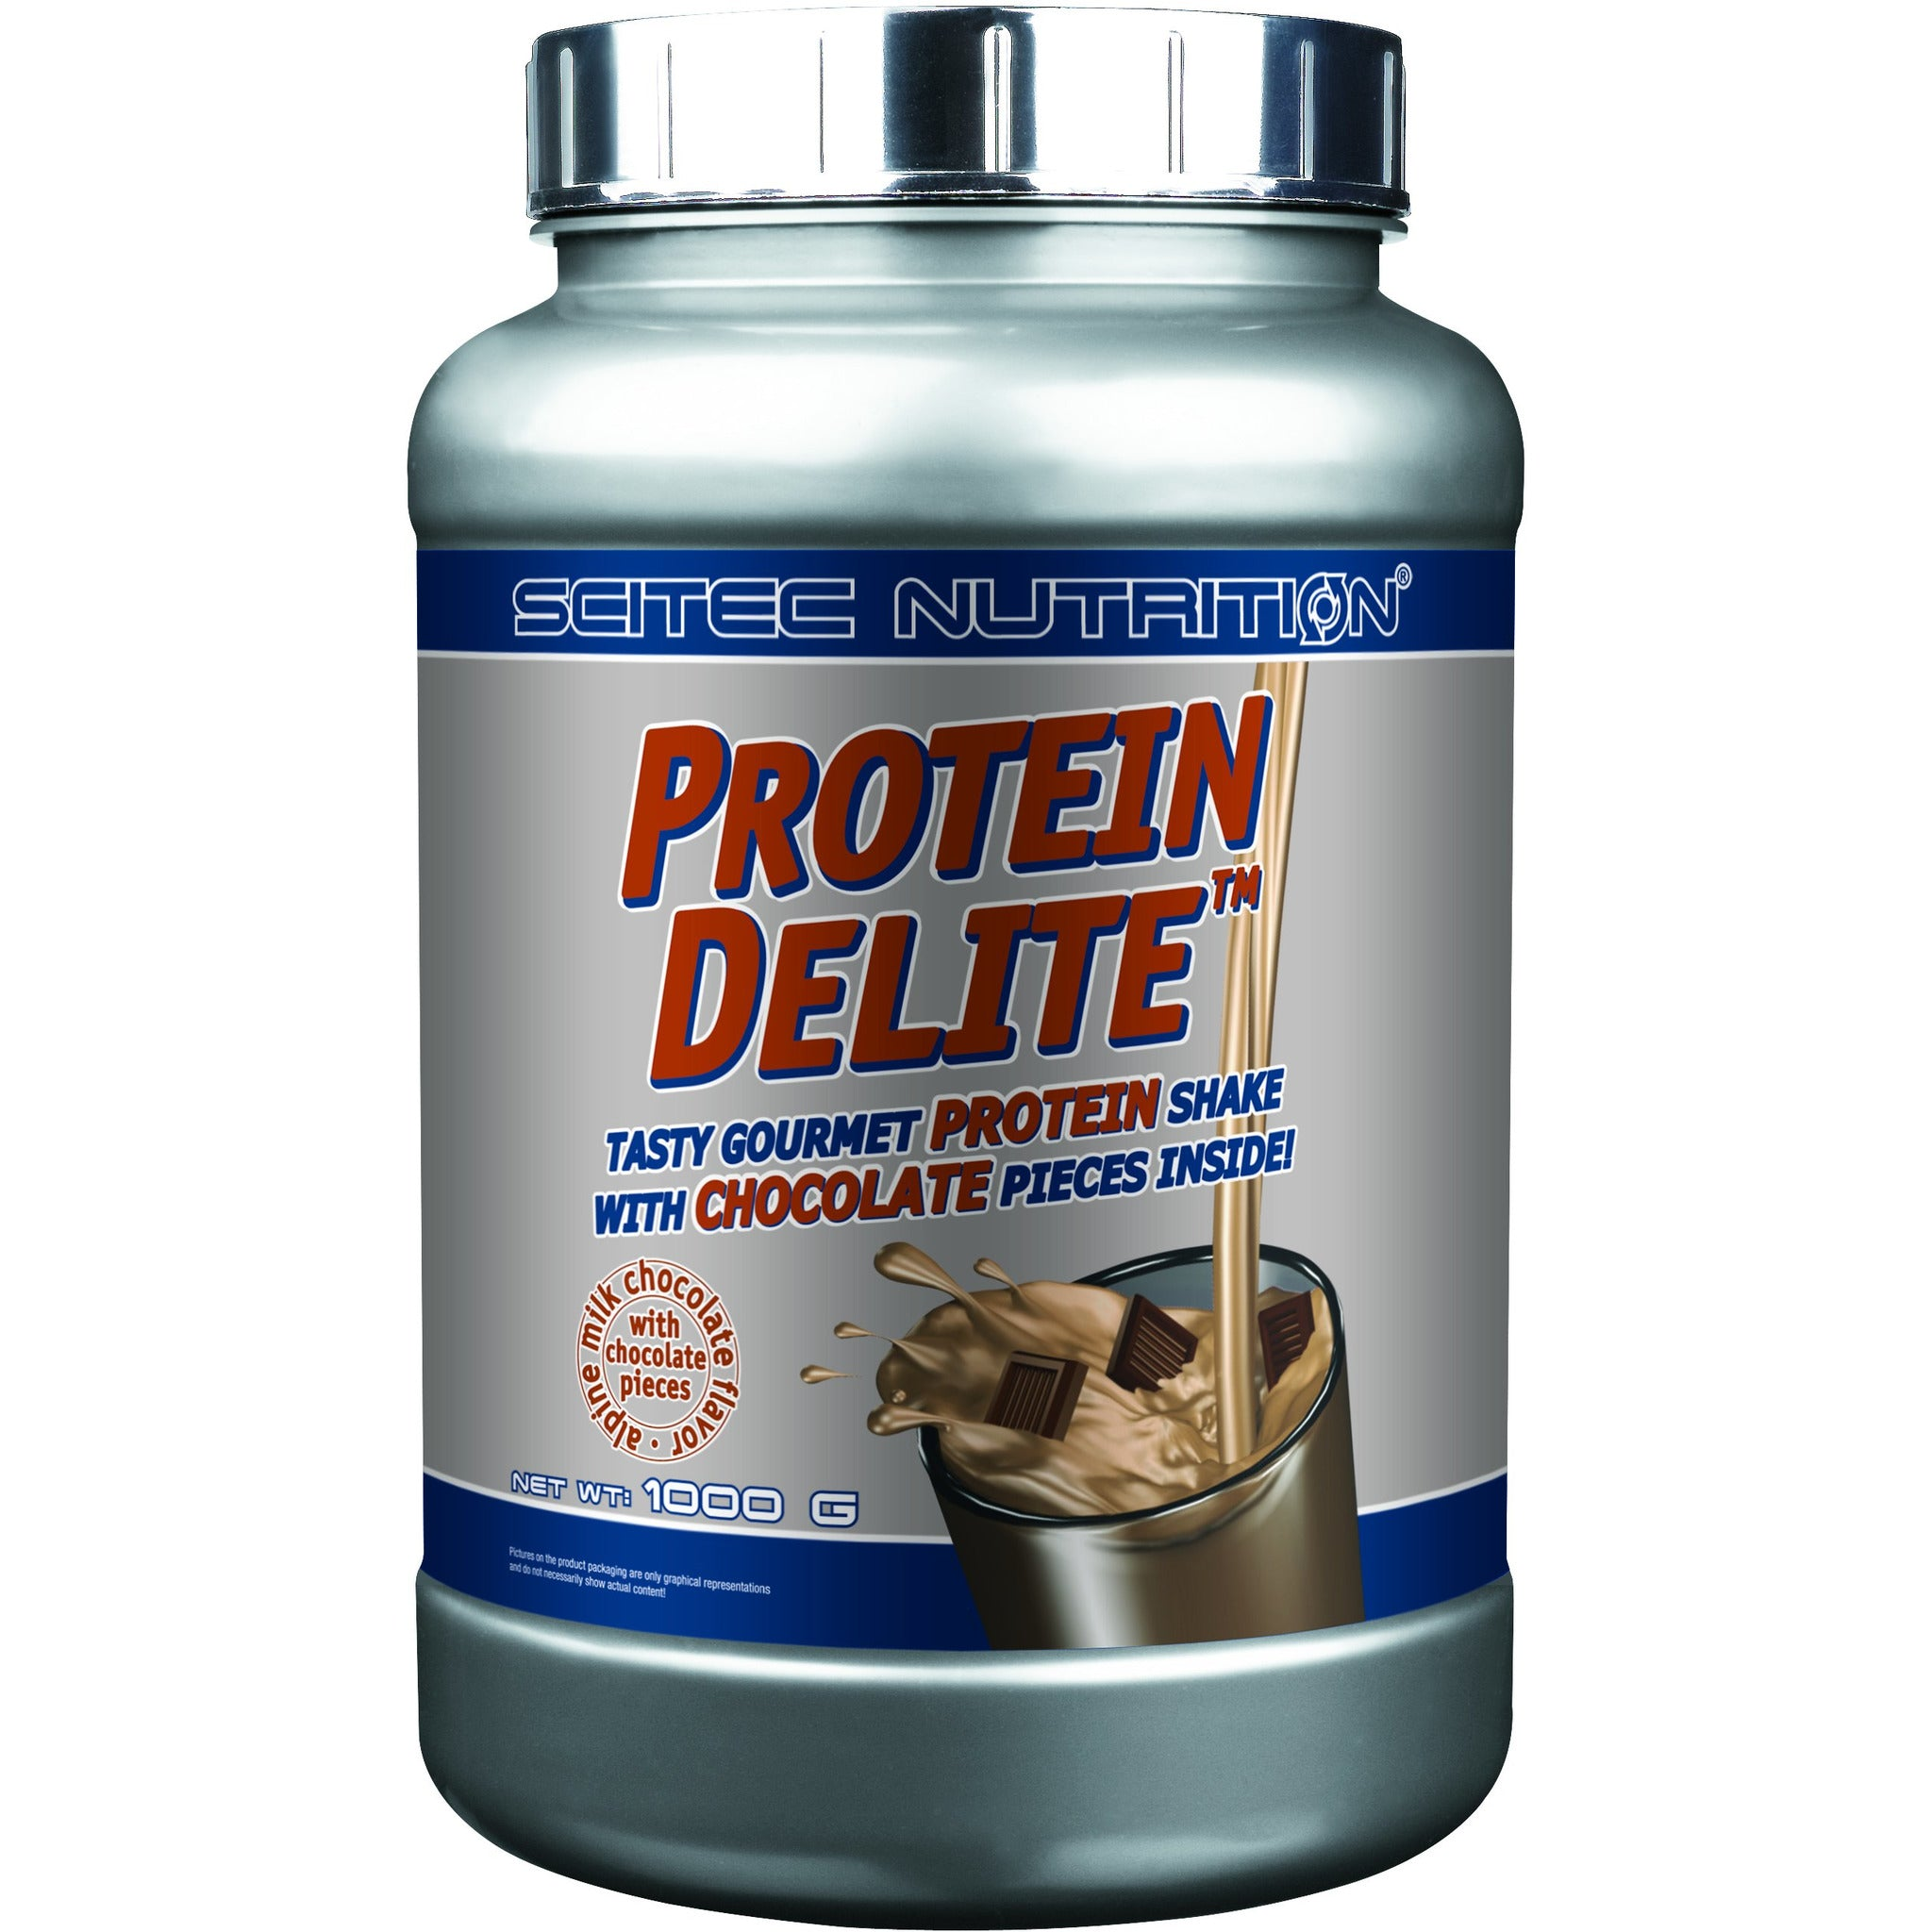 Protein Ice Delite - Tasty & Nutritious Meal Replacement